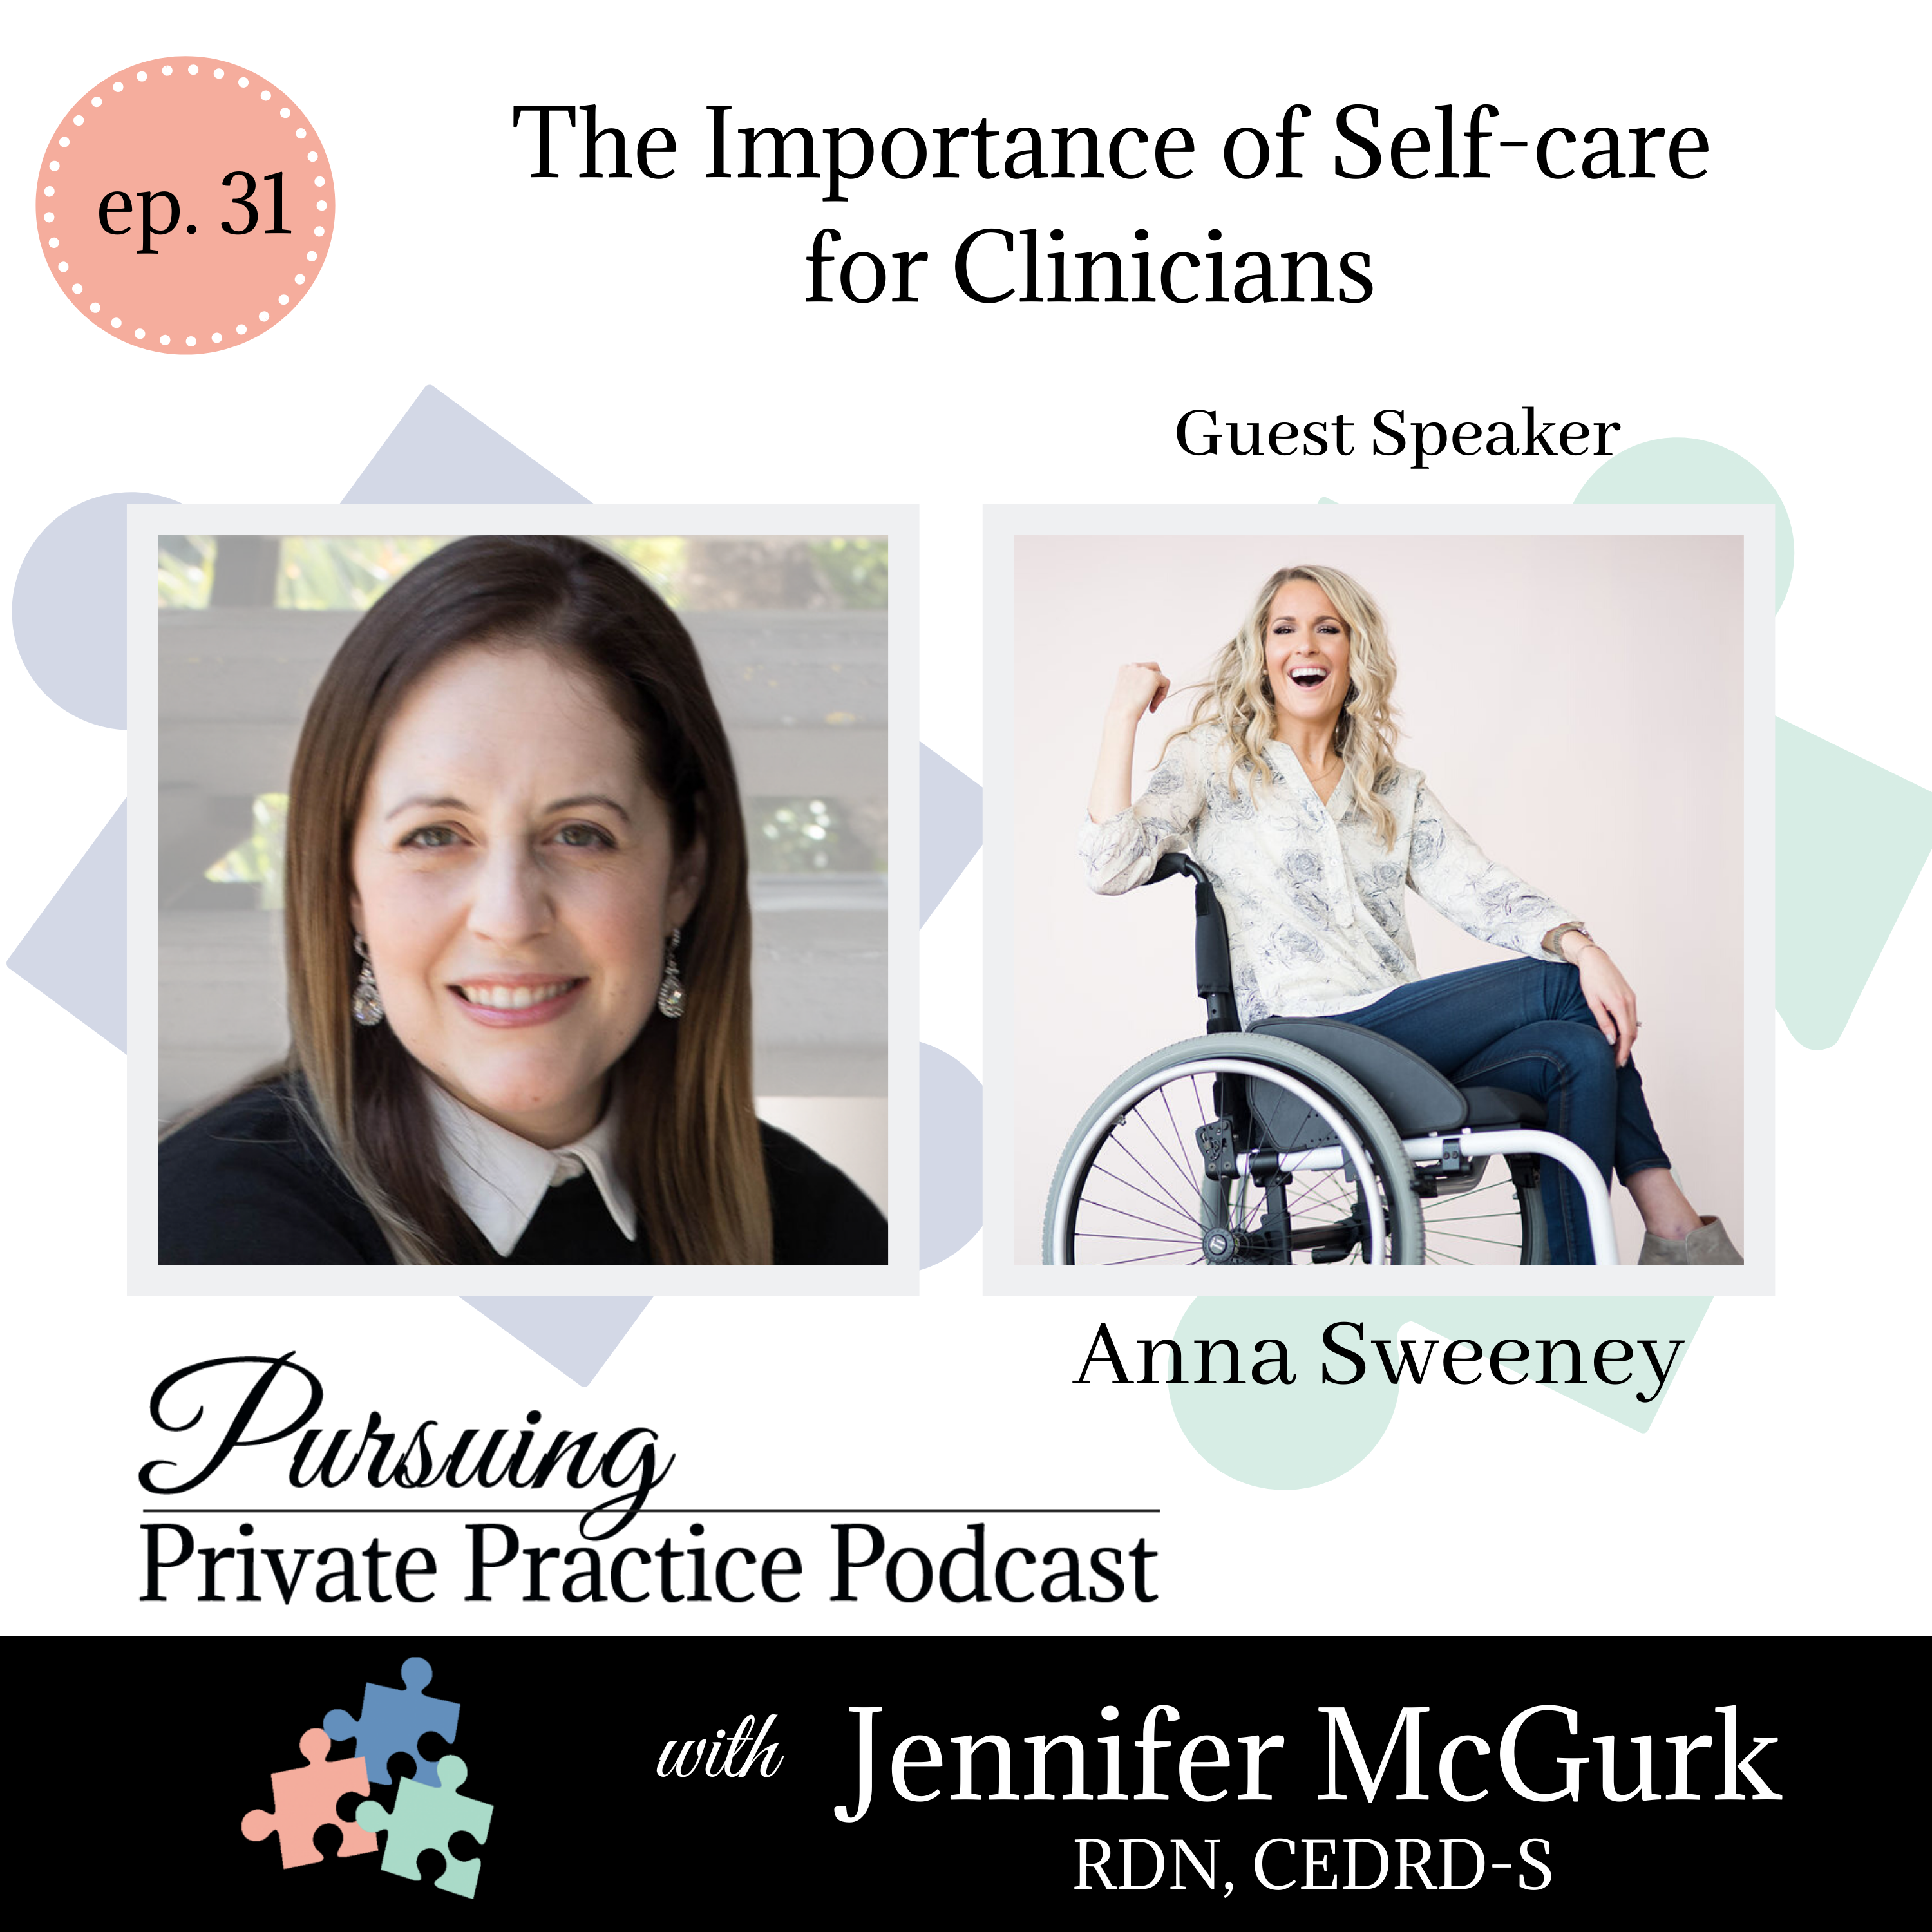 Pursuing Private Practice Podcast - The Importance of Self-care for Clinicians with Anna Sweeney